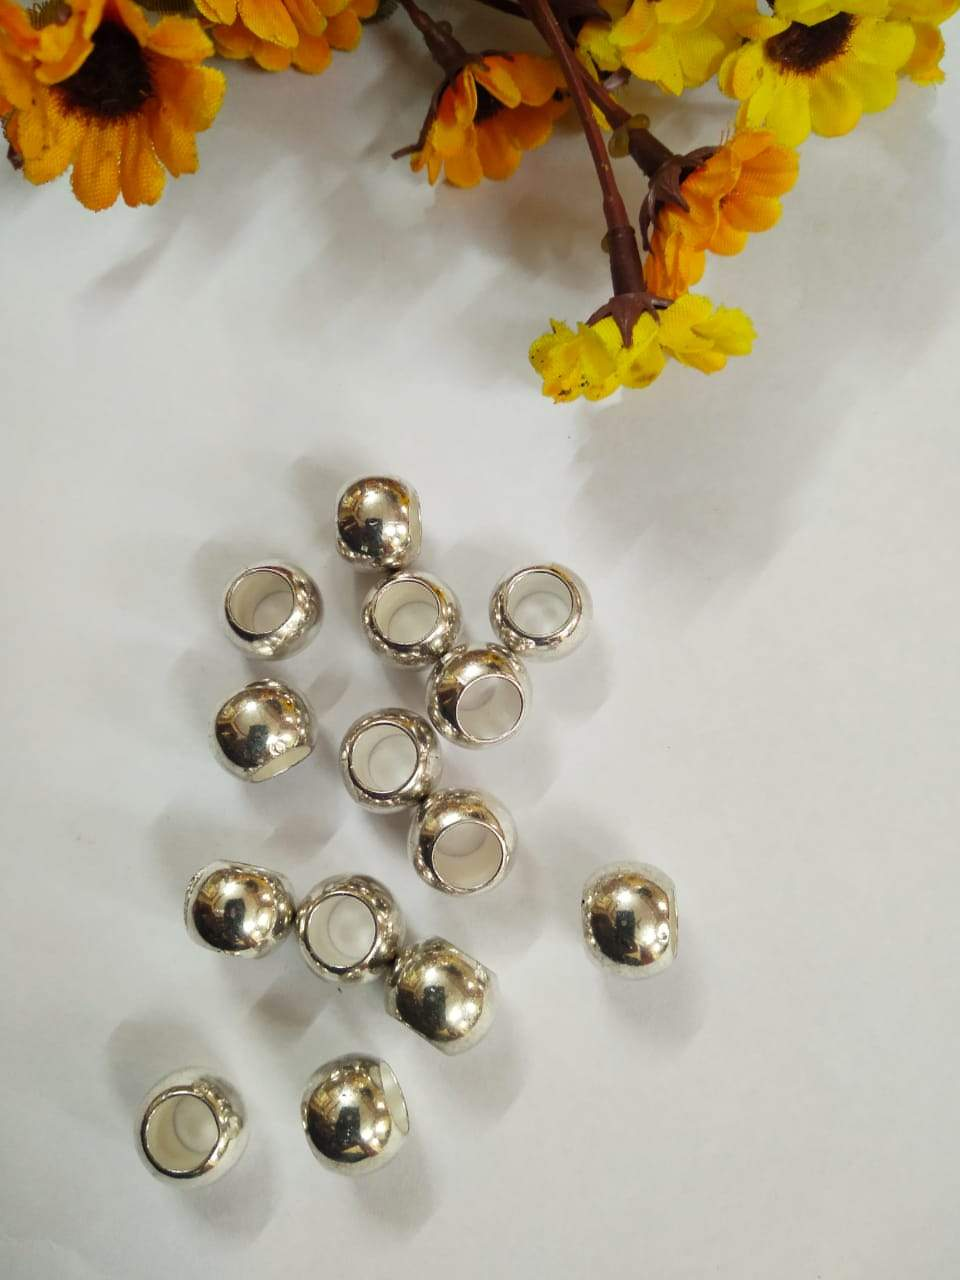 10 Mm Metal Balls (Big Hole) Silver